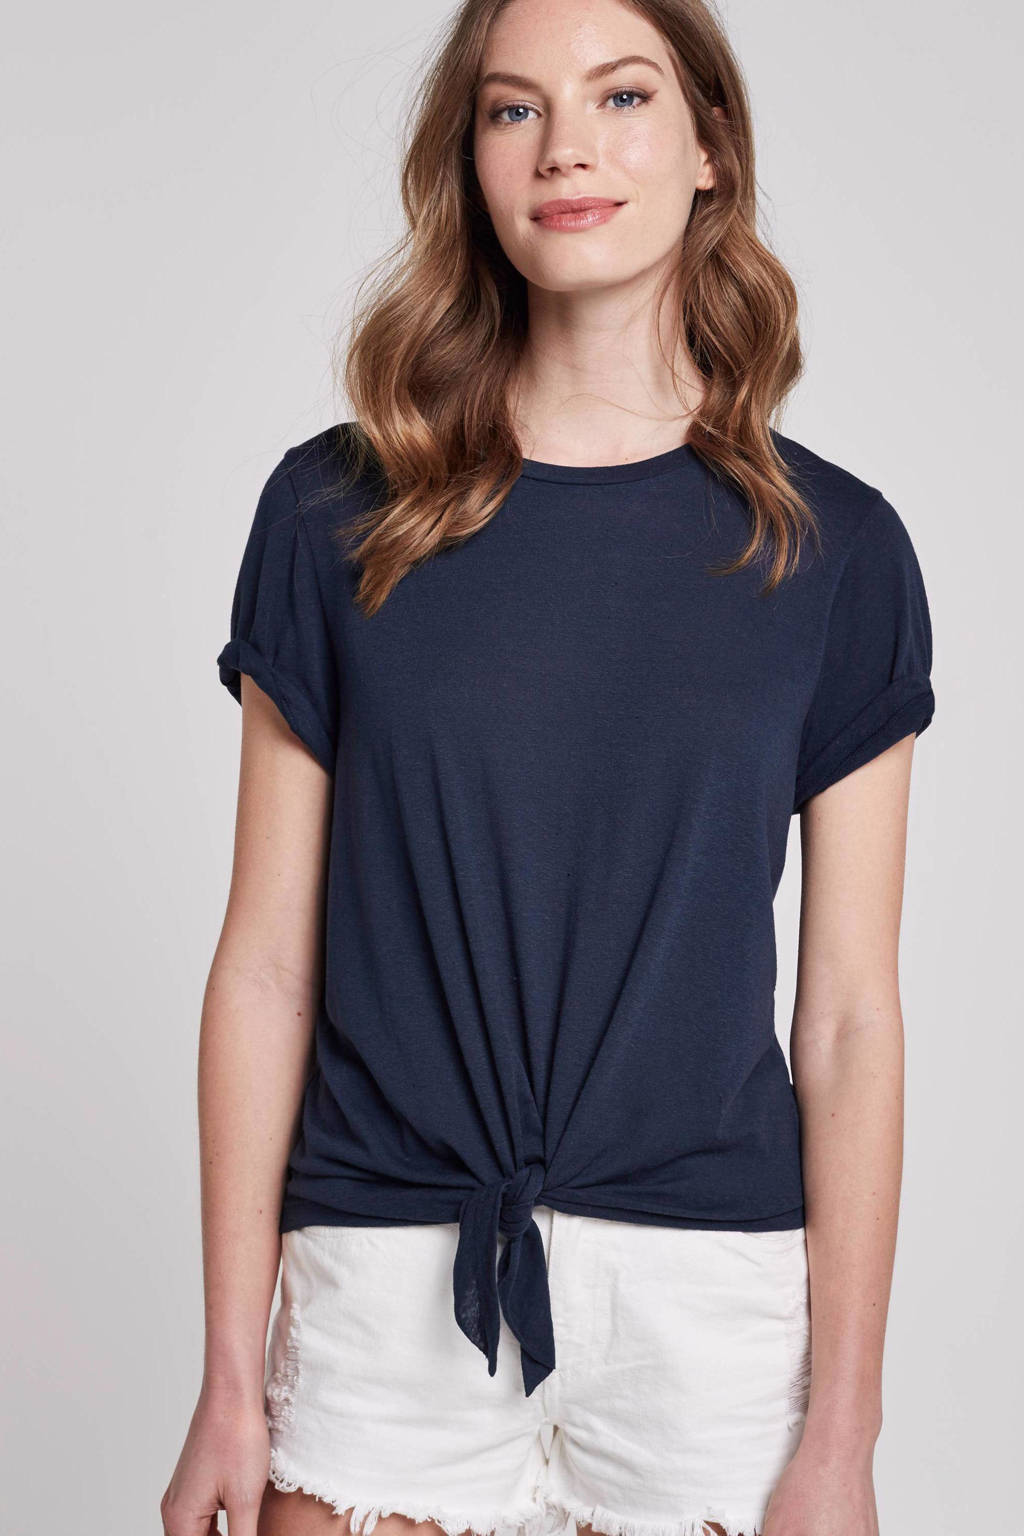 ONLY top met knoopdetail, Donkerbauw